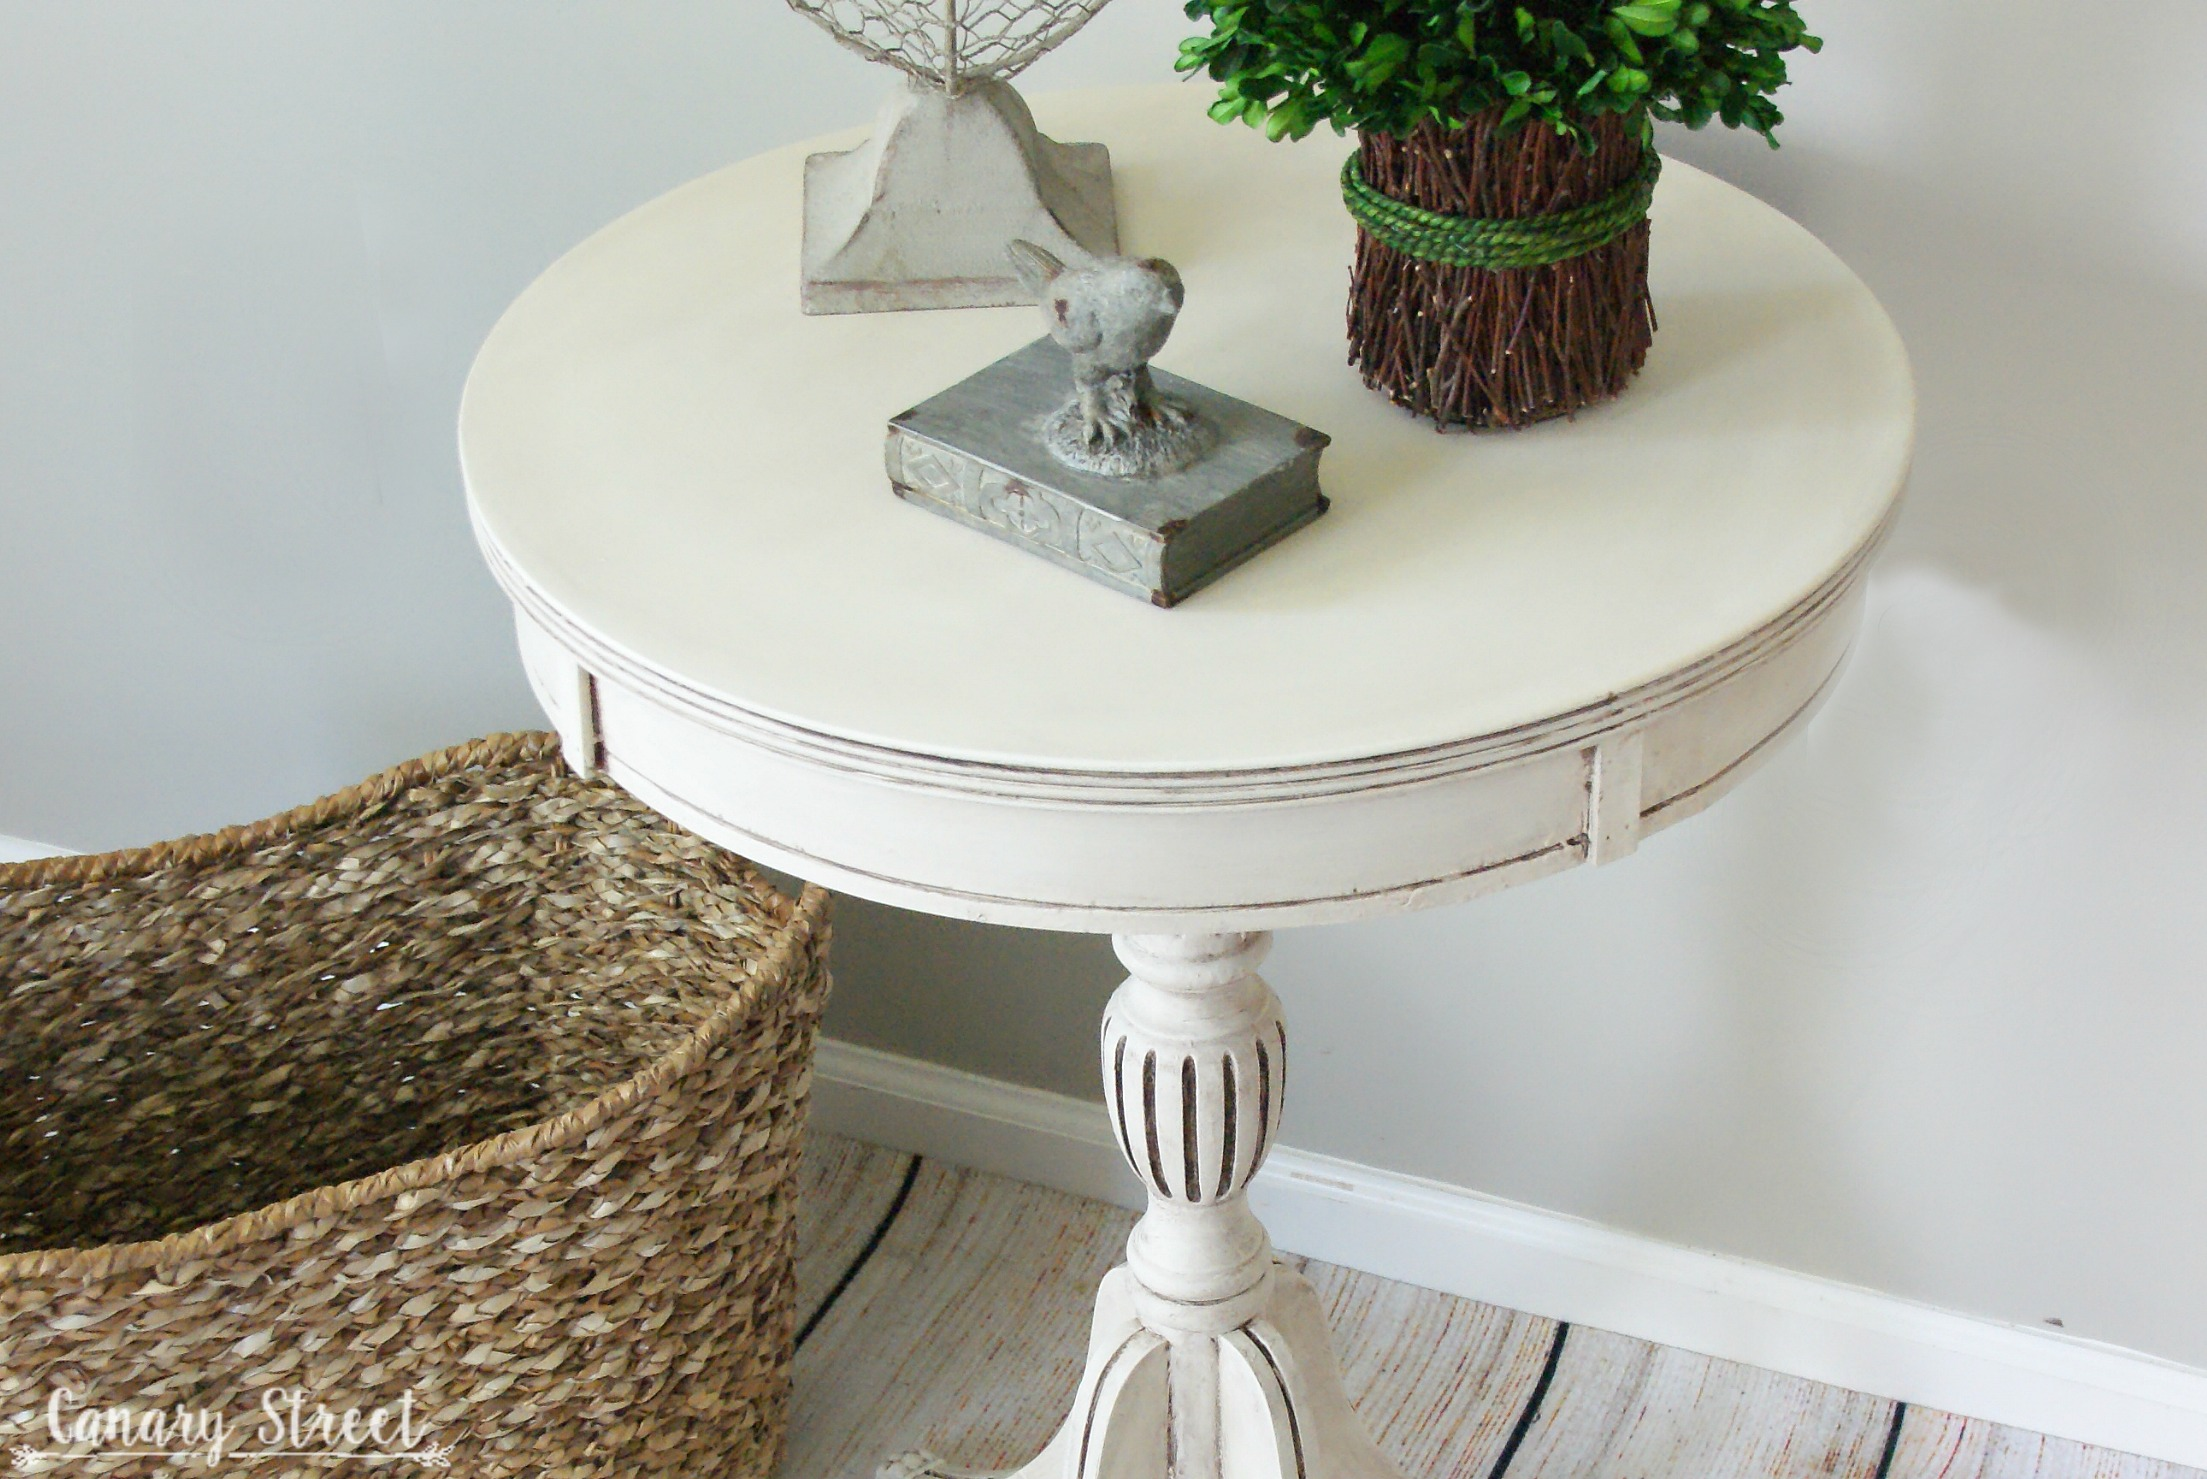 White Pedestal : White Pedestal Table - Canary Street Crafts